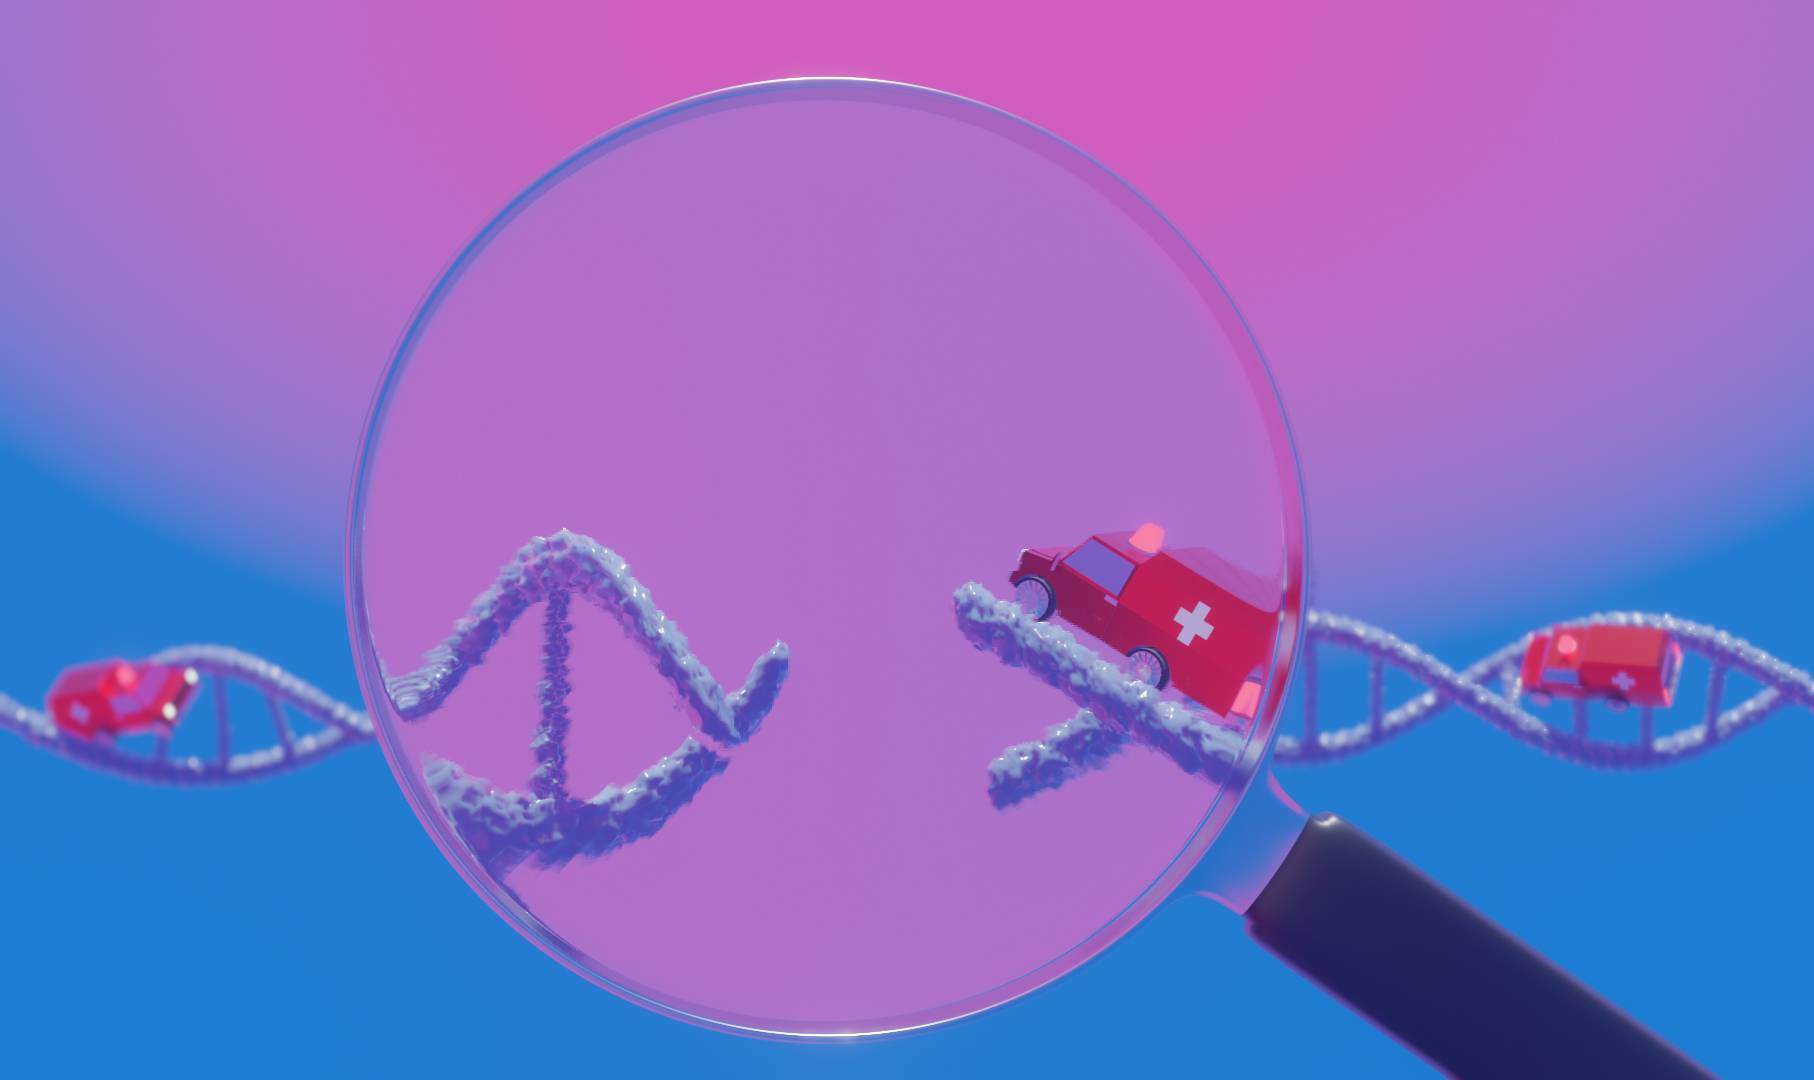 Two ambulances careen towards a broken part of a strand of DNA which is magnified by a glass